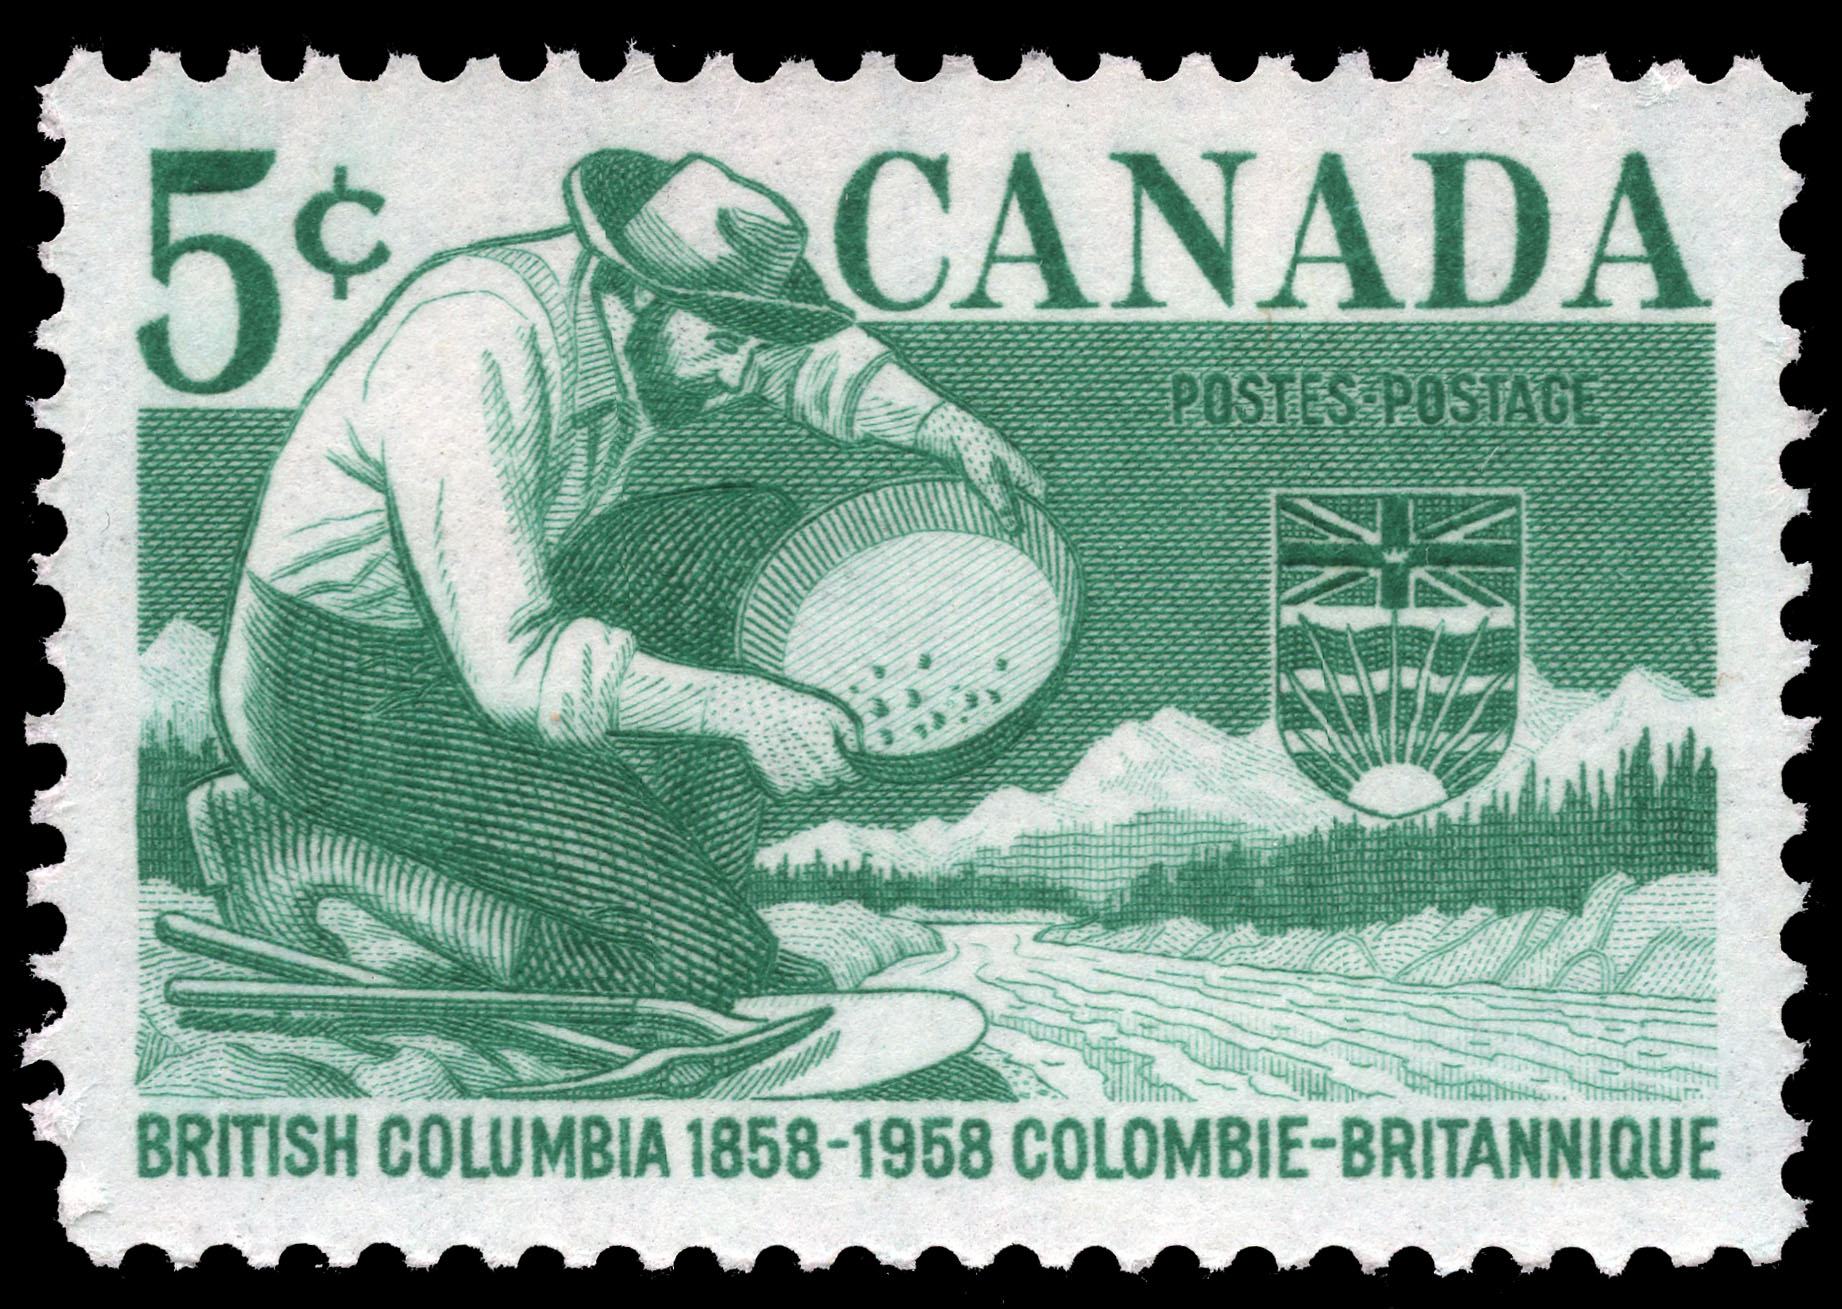 British Columbia, 1858-1958 Canada Postage Stamp